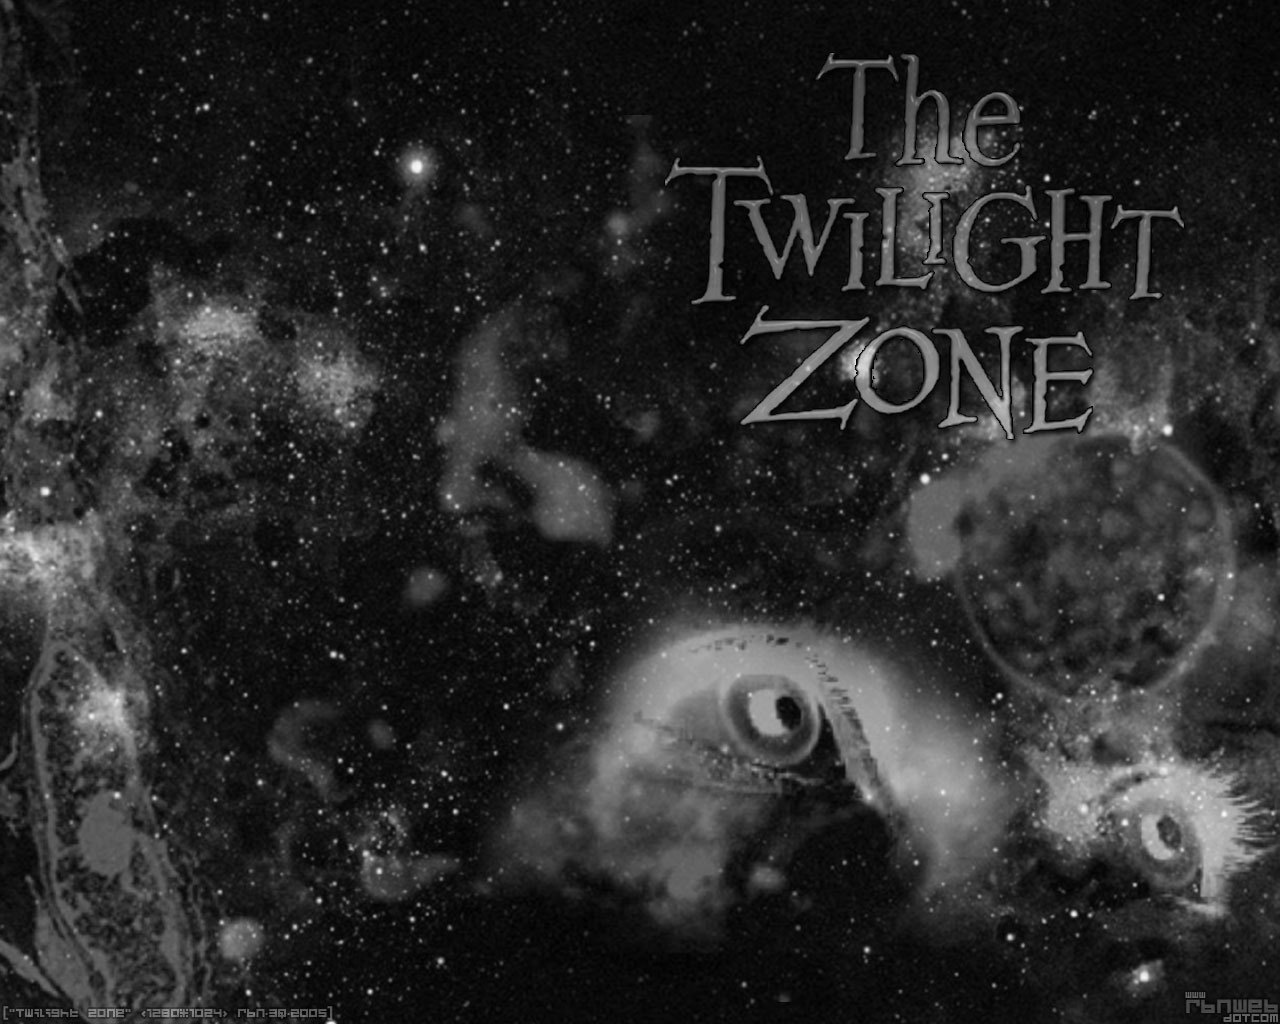 The Twilight Zone Original Stories 1985 Hardcover Book With Dustjacket 1st Ed